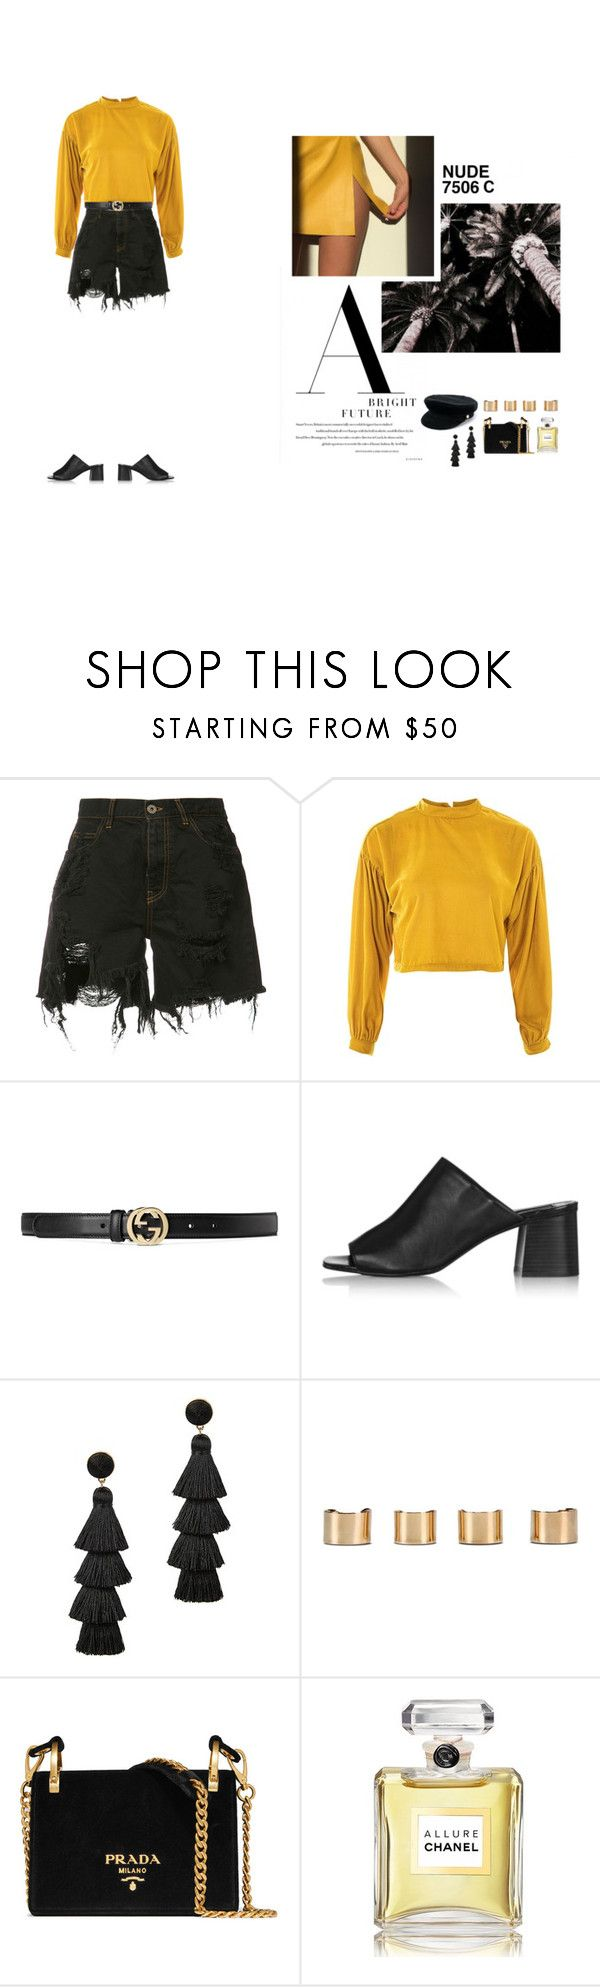 """Bright Future"" by nudenim ❤ liked on Polyvore featuring Faith Connexion, Topshop, Gucci, BaubleBar, Maison Margiela, Prada, Chanel, Manokhi and Pantone"